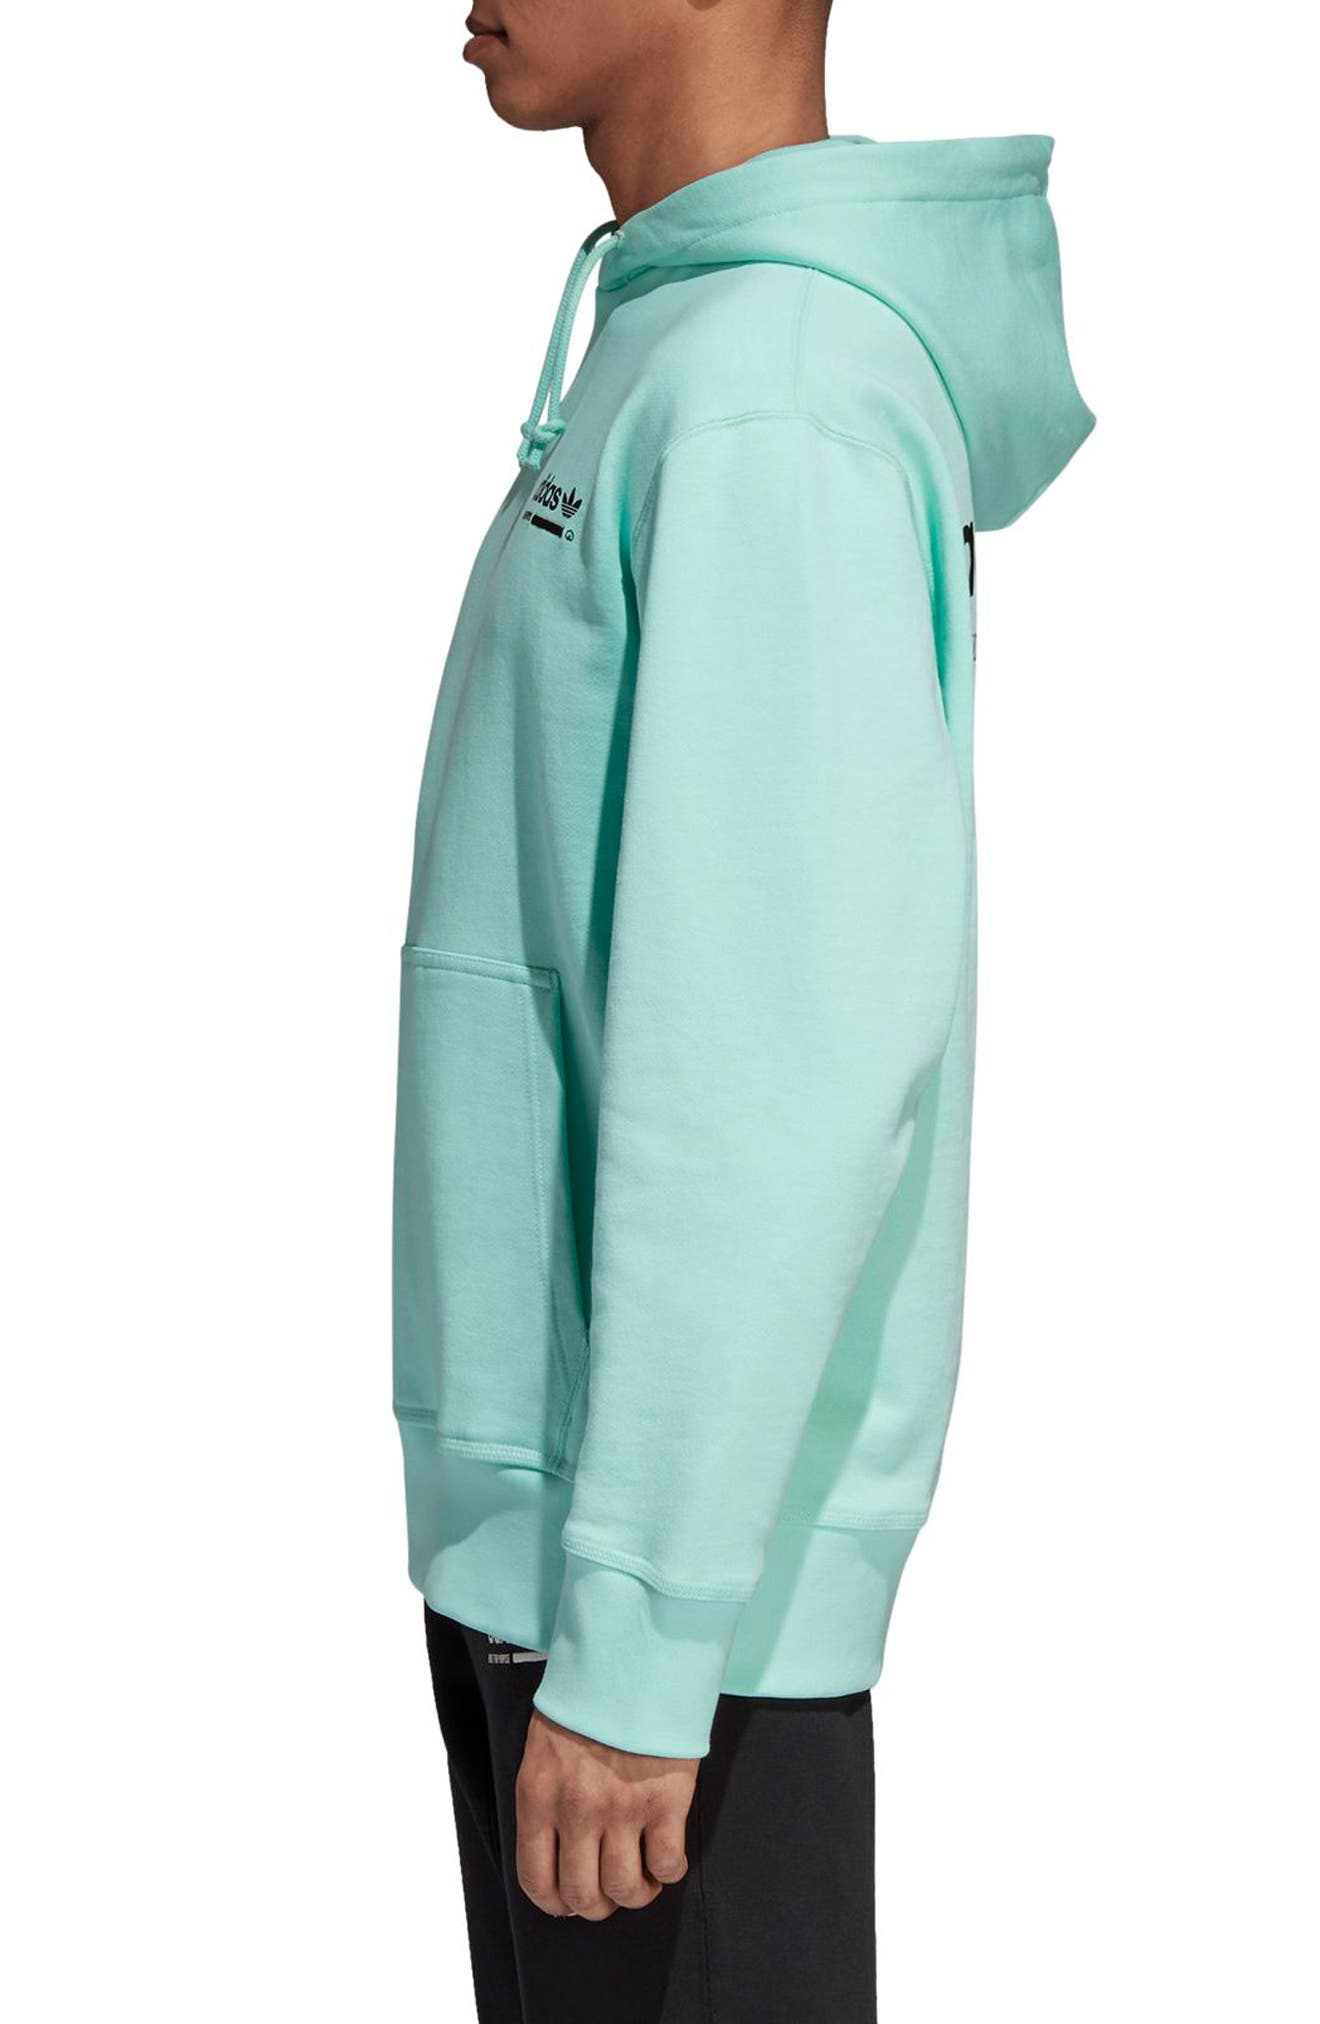 Kaval Hoodie,                             Alternate thumbnail 3, color,                             CLEAR MINT